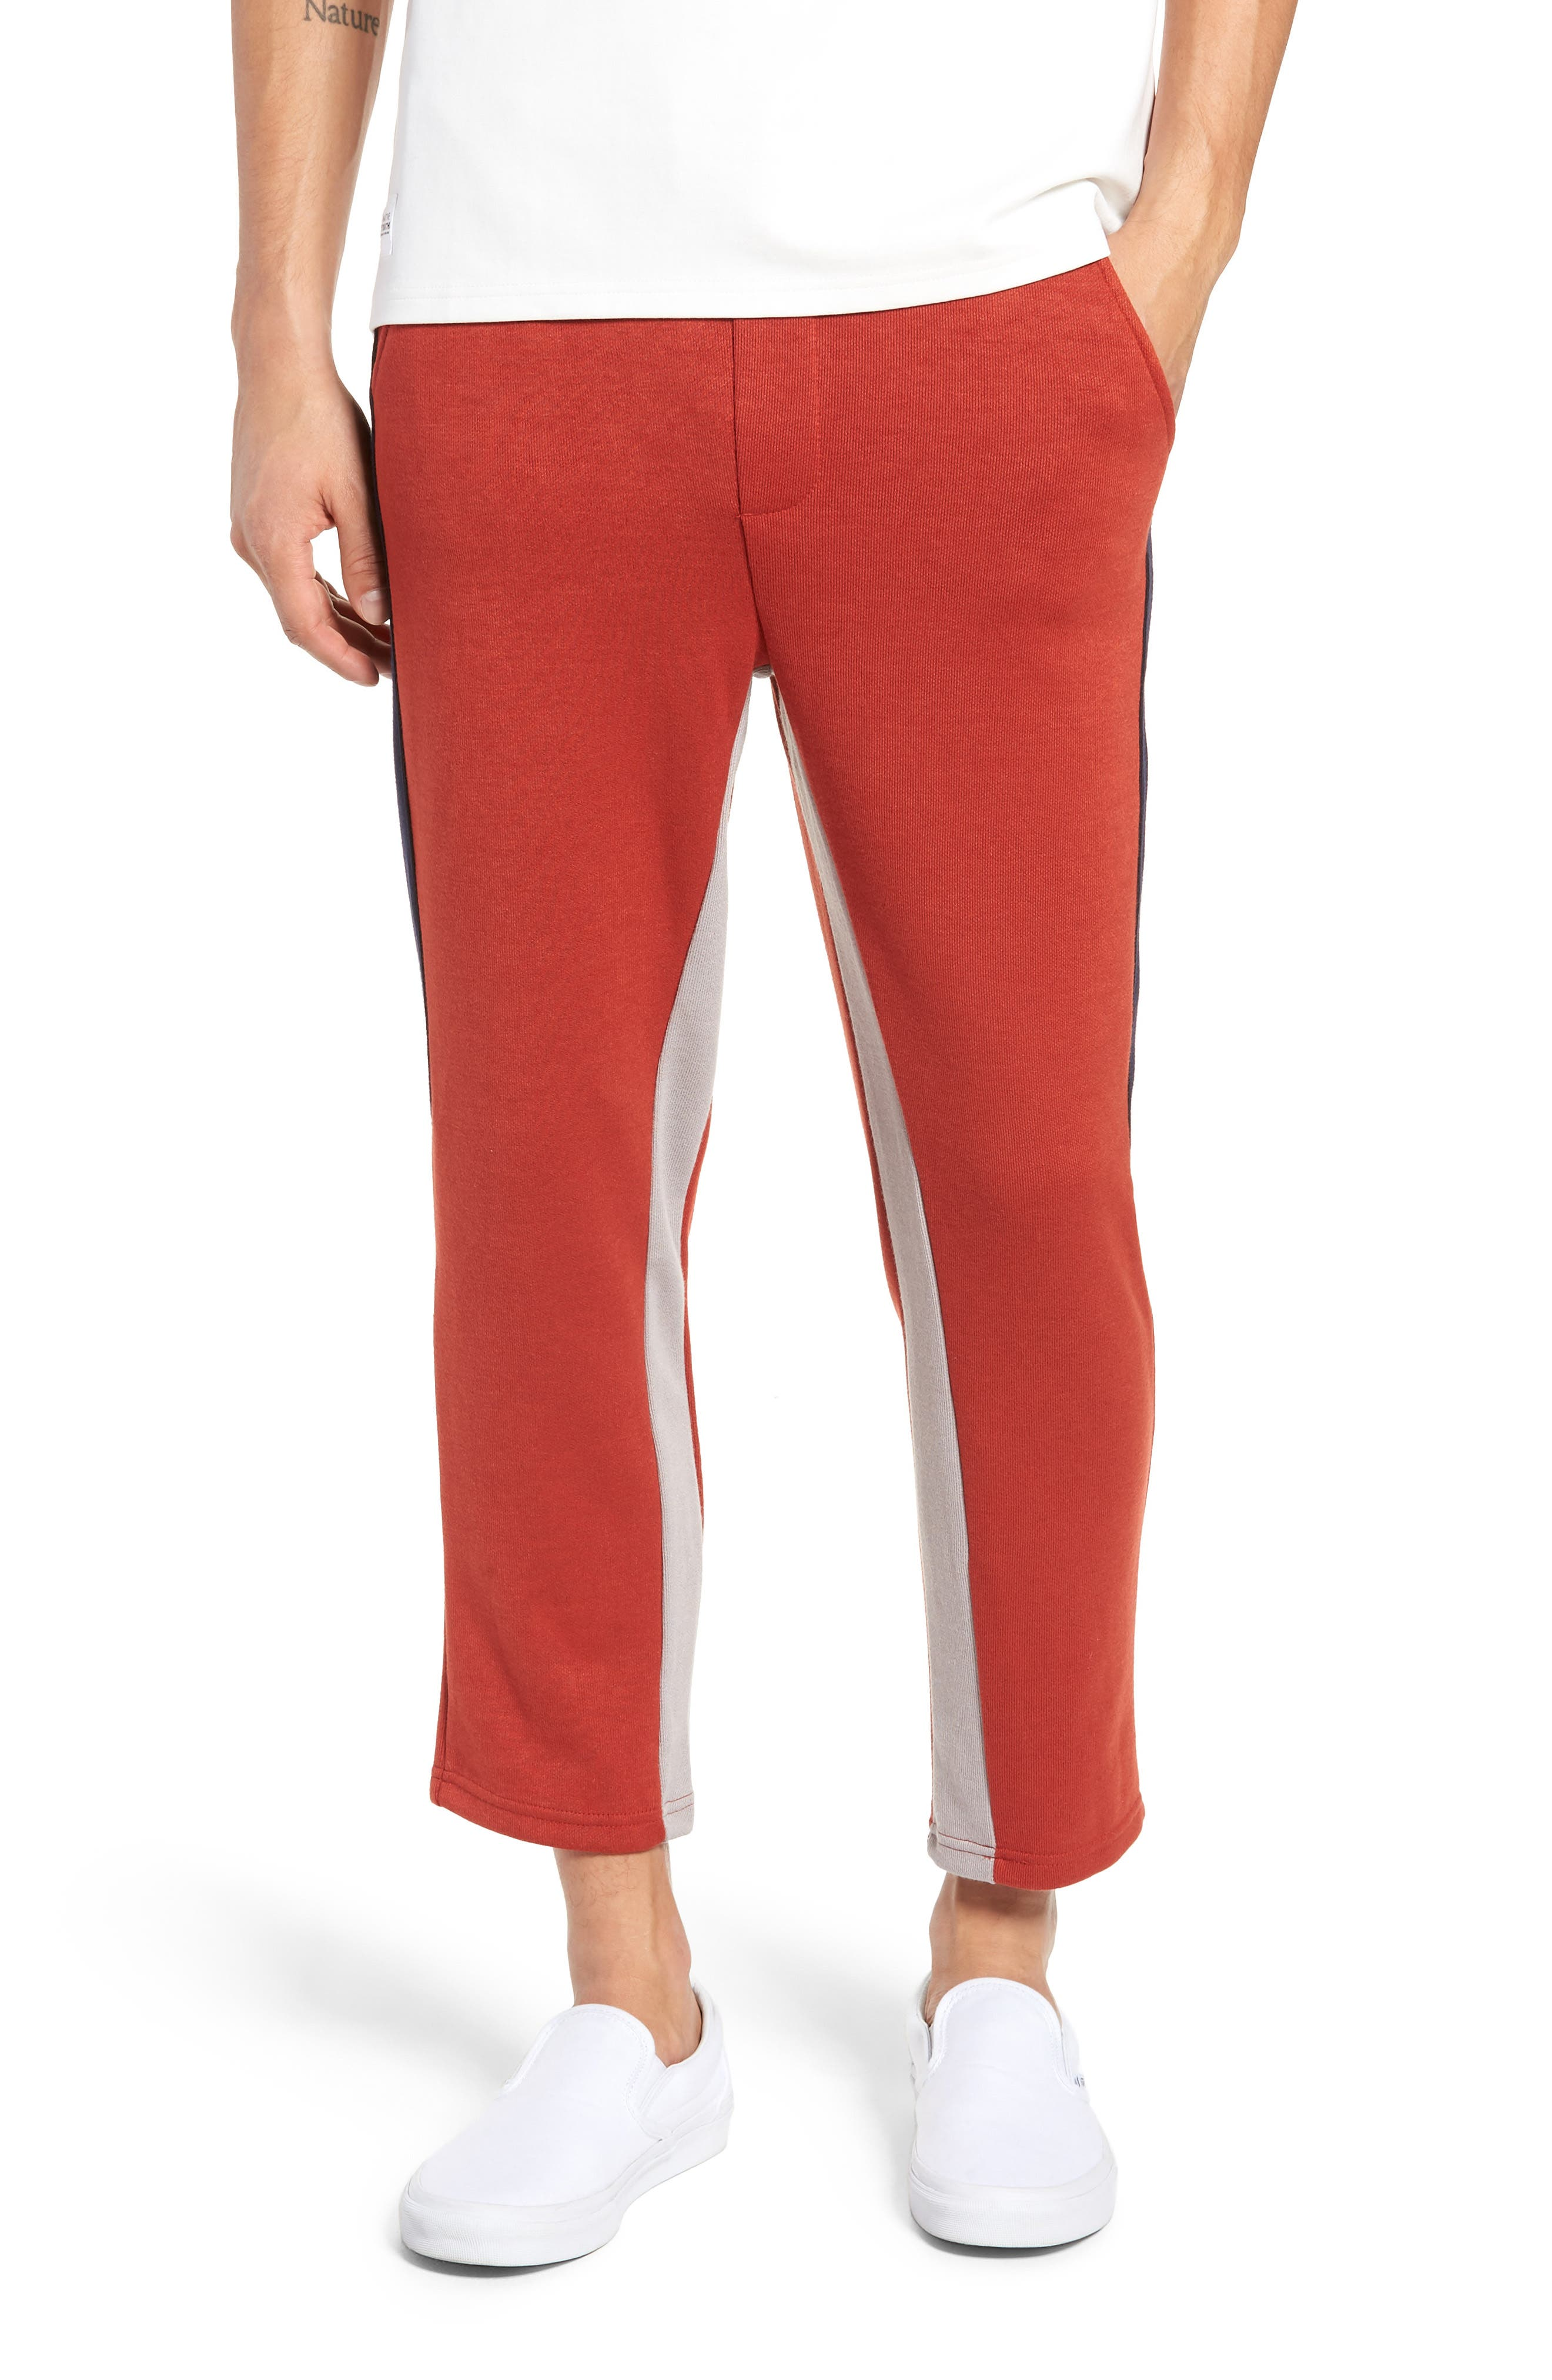 NATIVE YOUTH Slim Fit Colorblock Stripe Jogger Pants in Rust